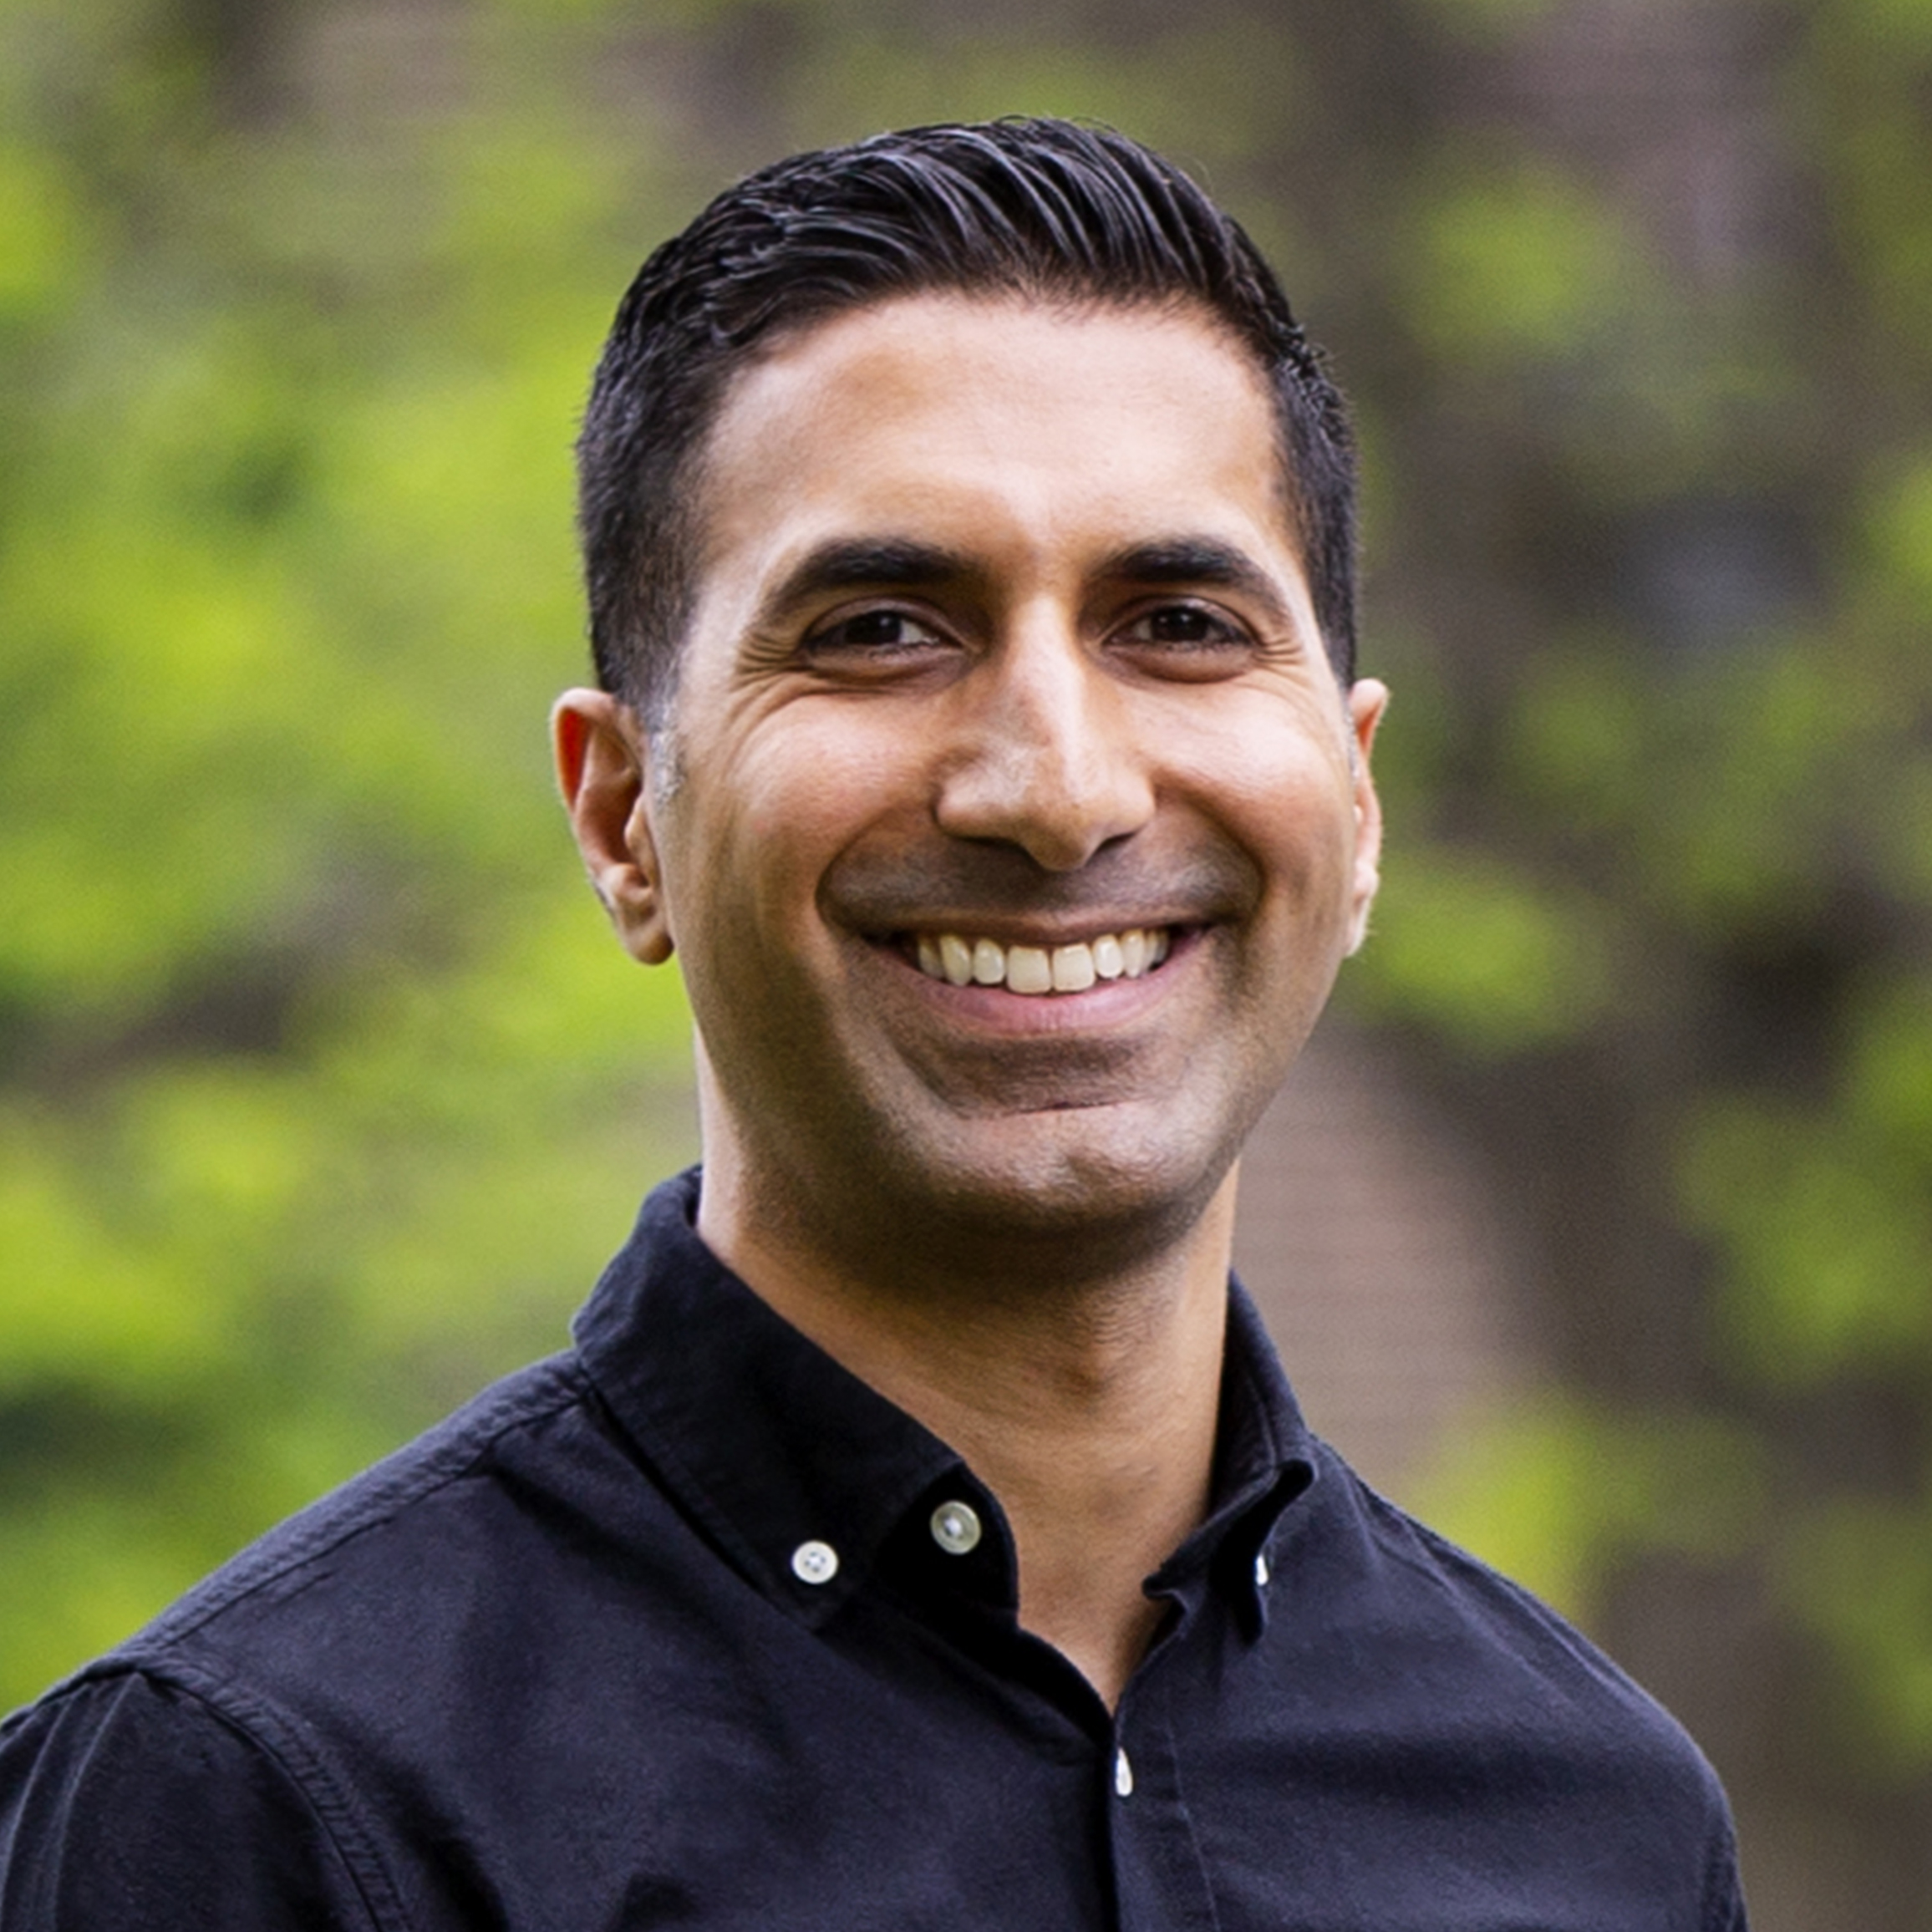 Rahim Kaba, VP Marketing   Rahim brings nearly two decades of B2B technology marketing experience, holding senior management roles at OneSpan and CAE. He is passionate about building great businesses through a deep understanding of the market and buyers.